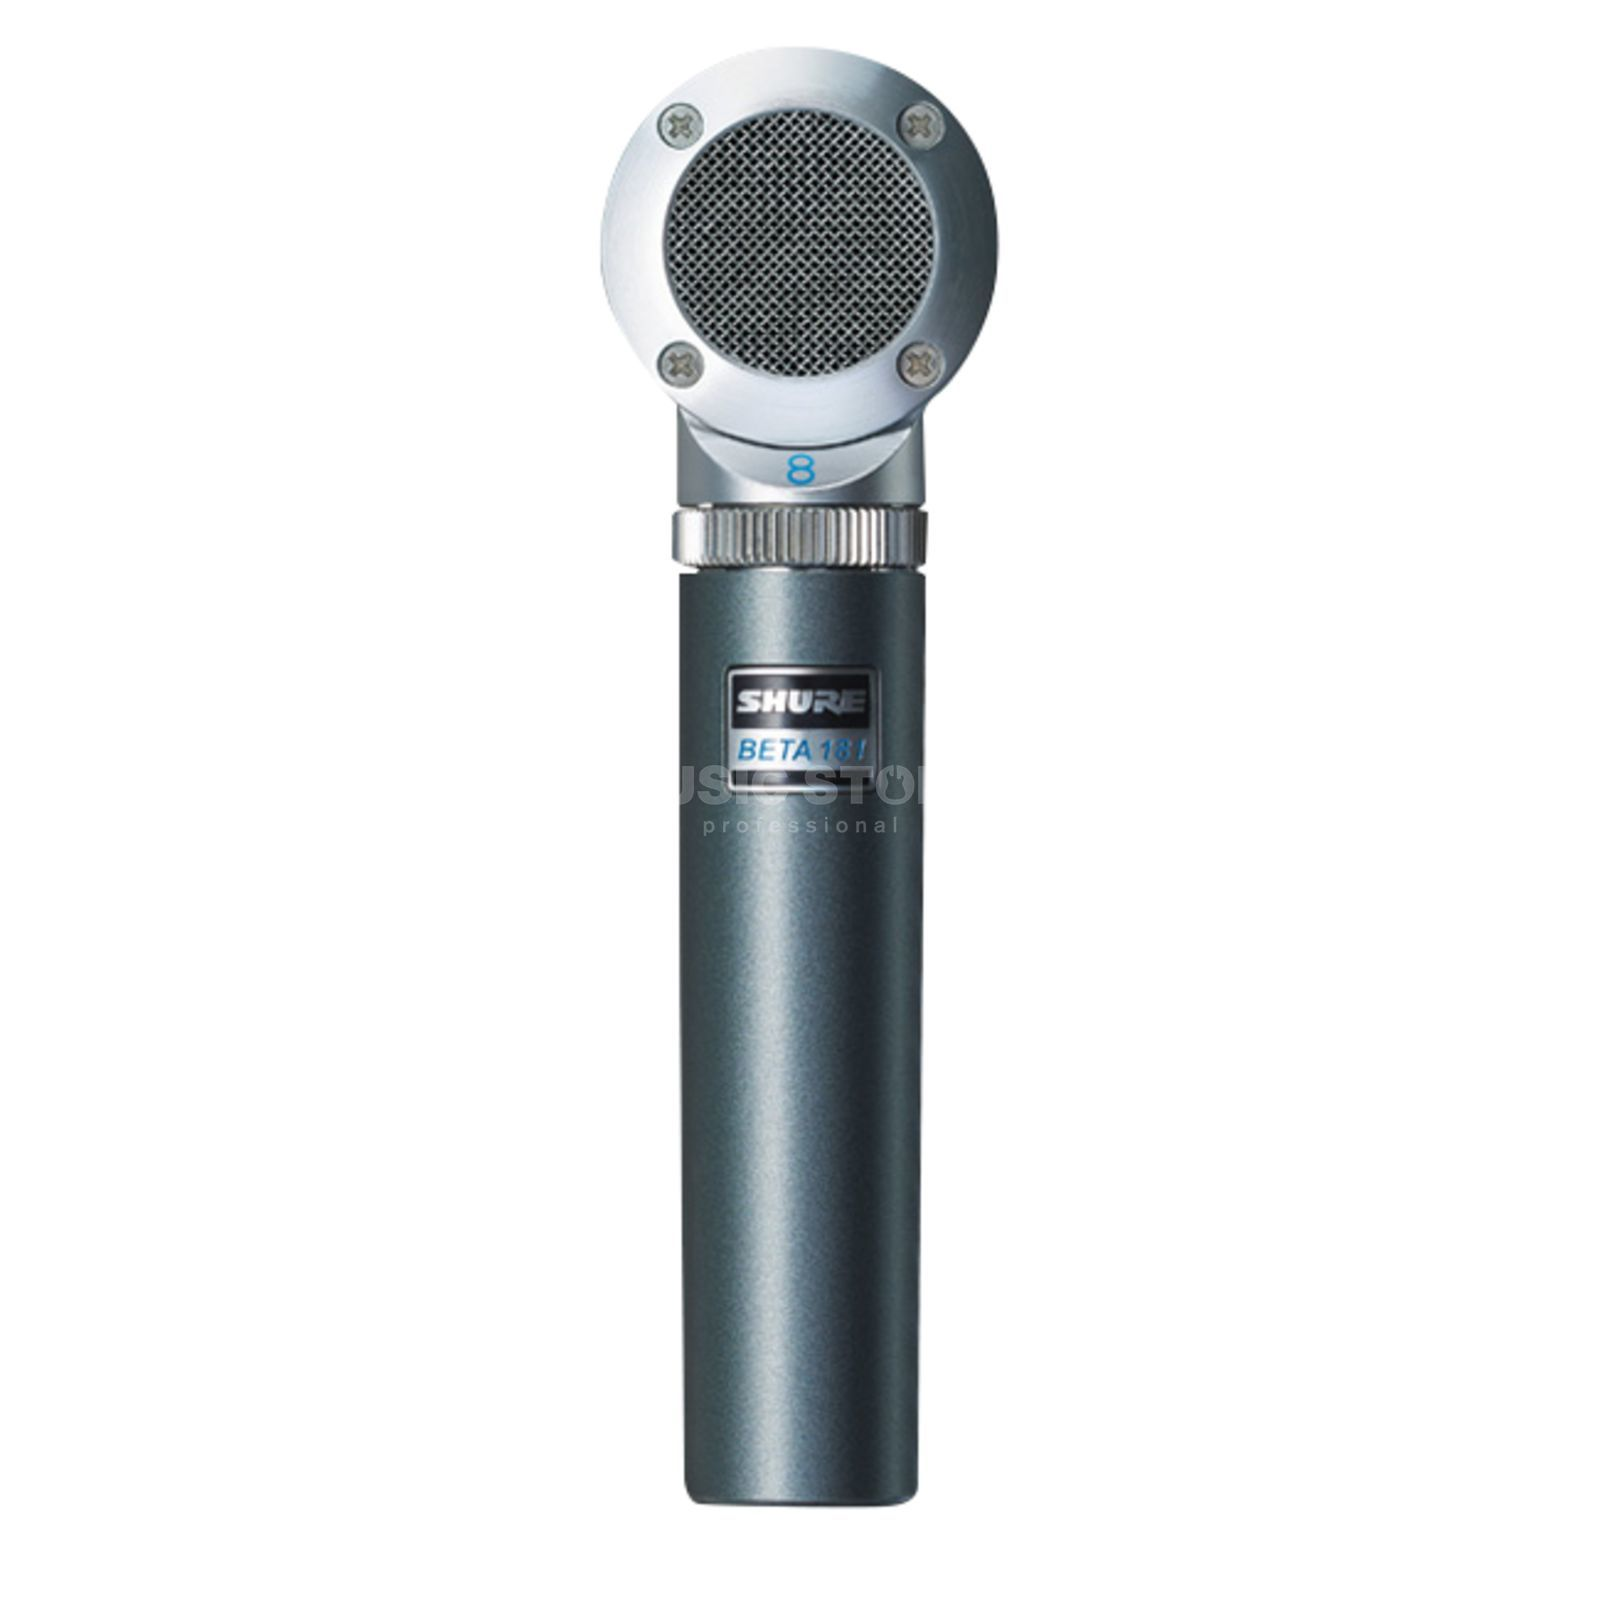 Shure Beta 181-S small-membrane Microphone Produktbillede